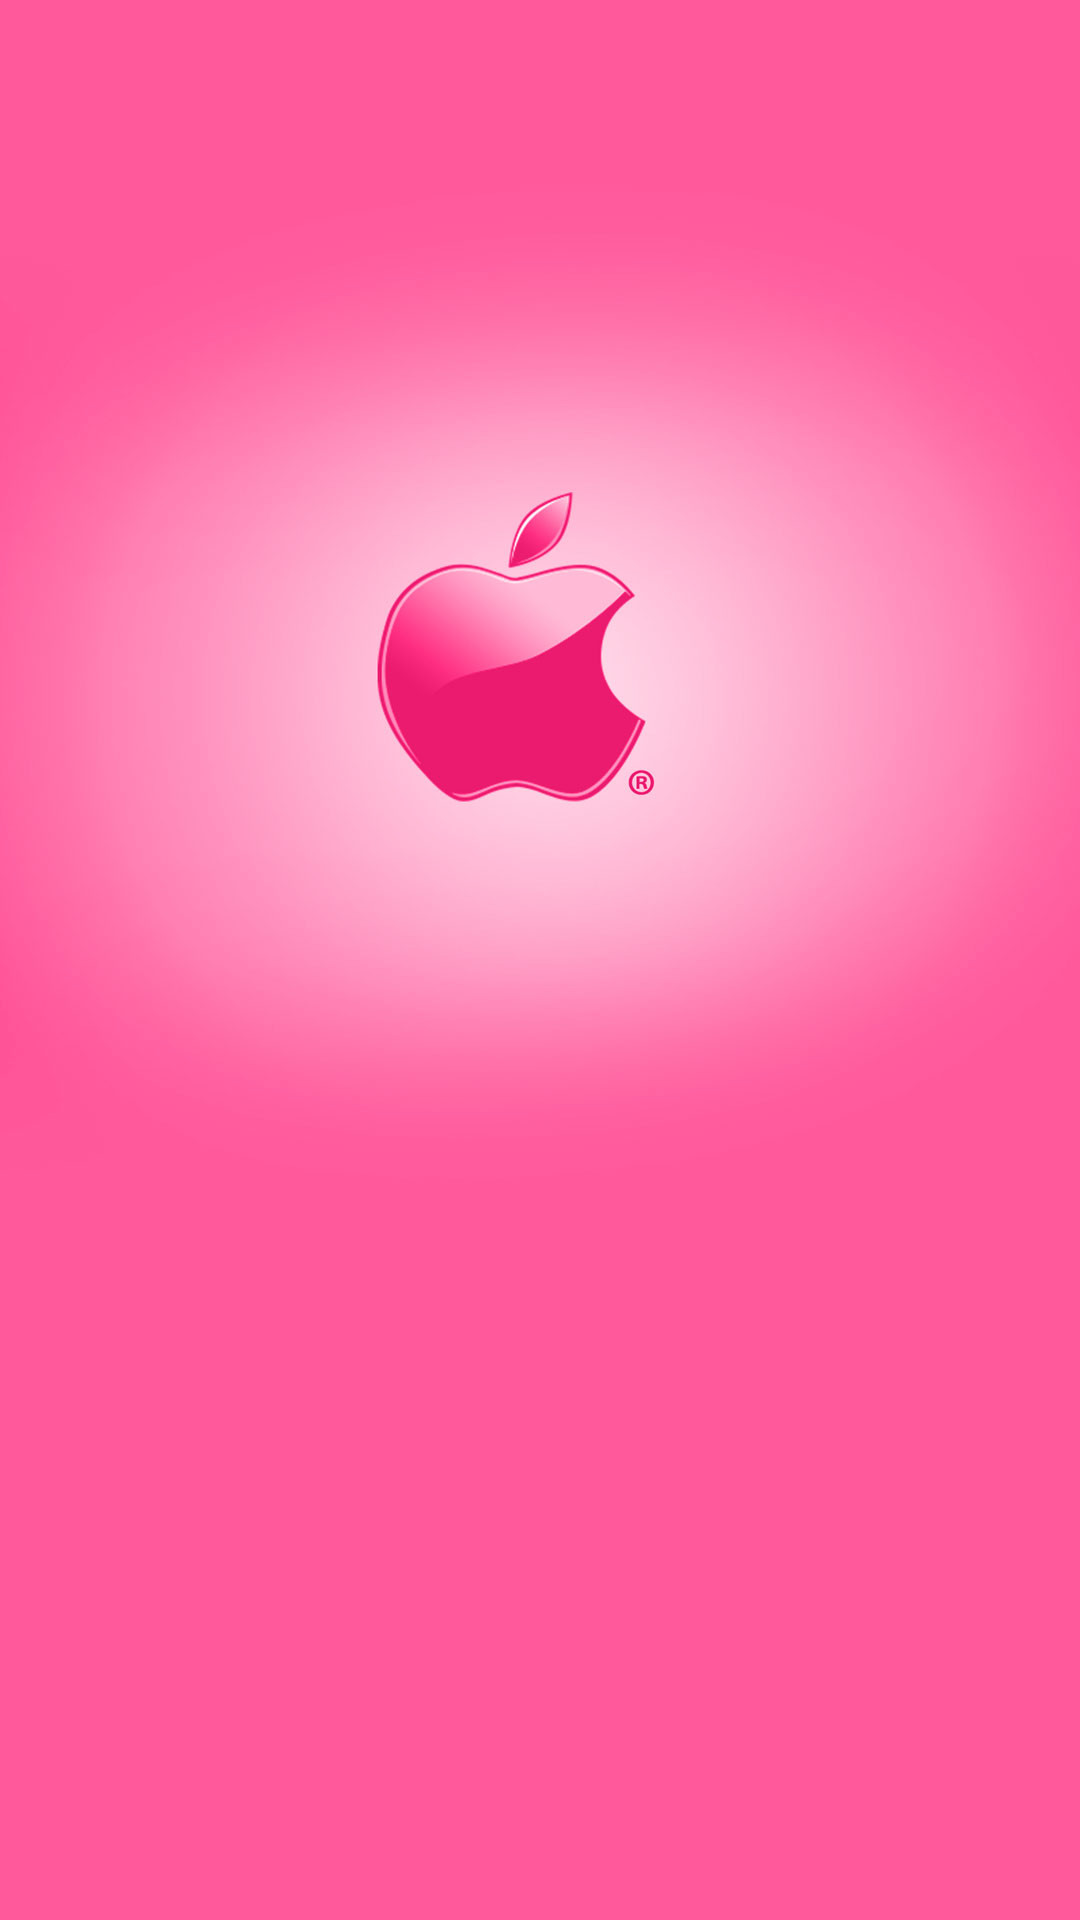 Pink iPhone 6 Plus wallpaper for girls